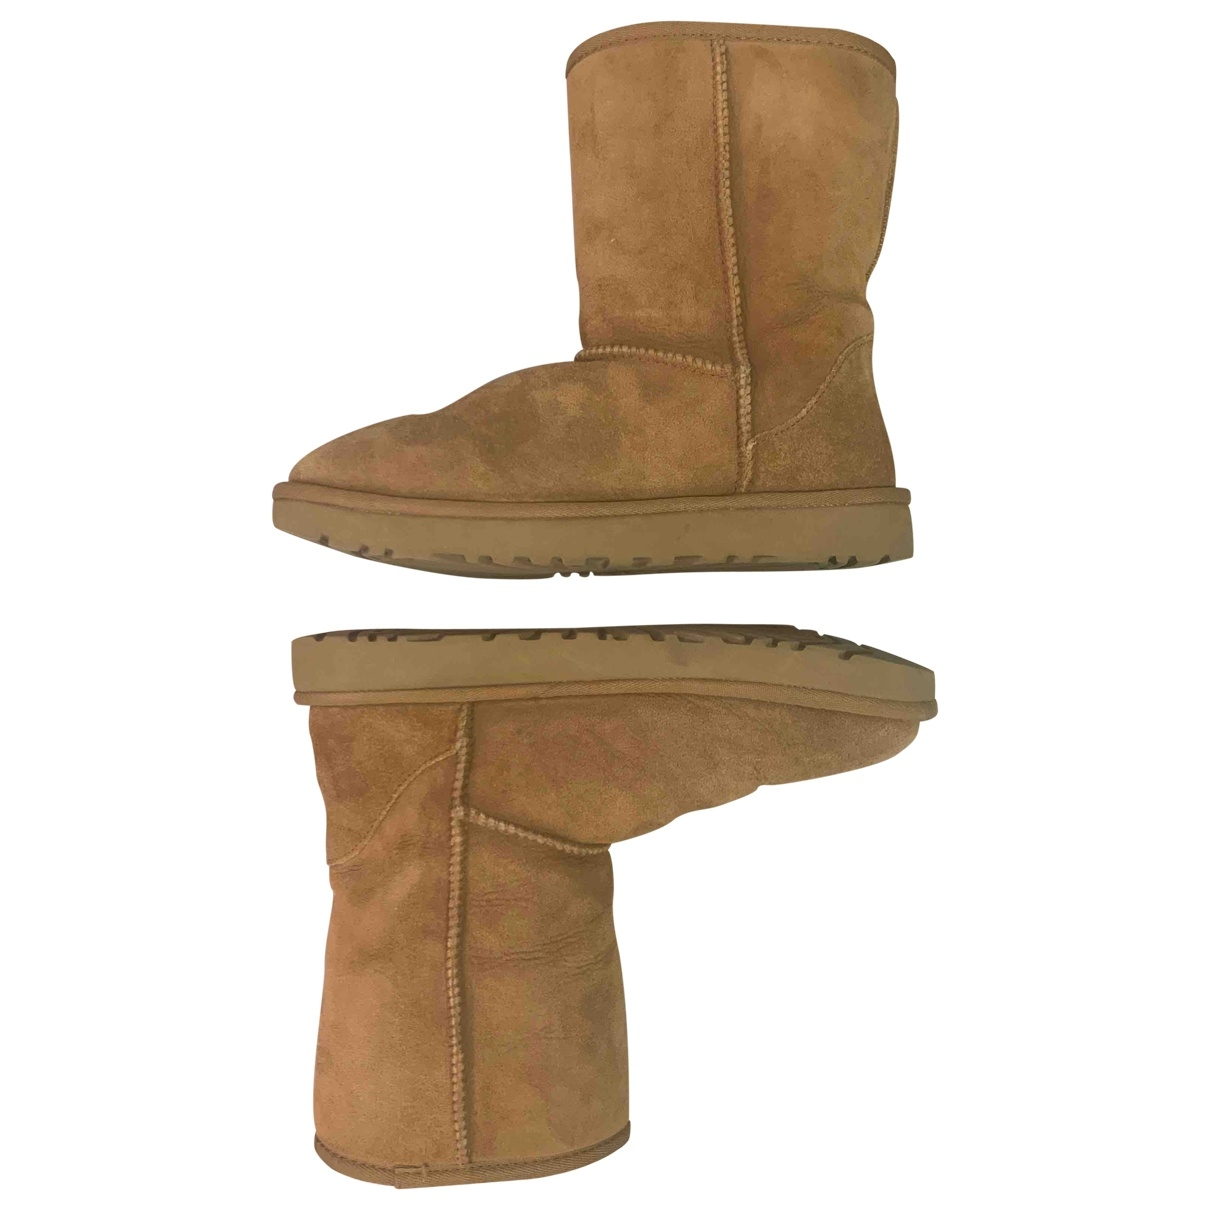 Ugg \N Camel Suede Boots for Women 7 US